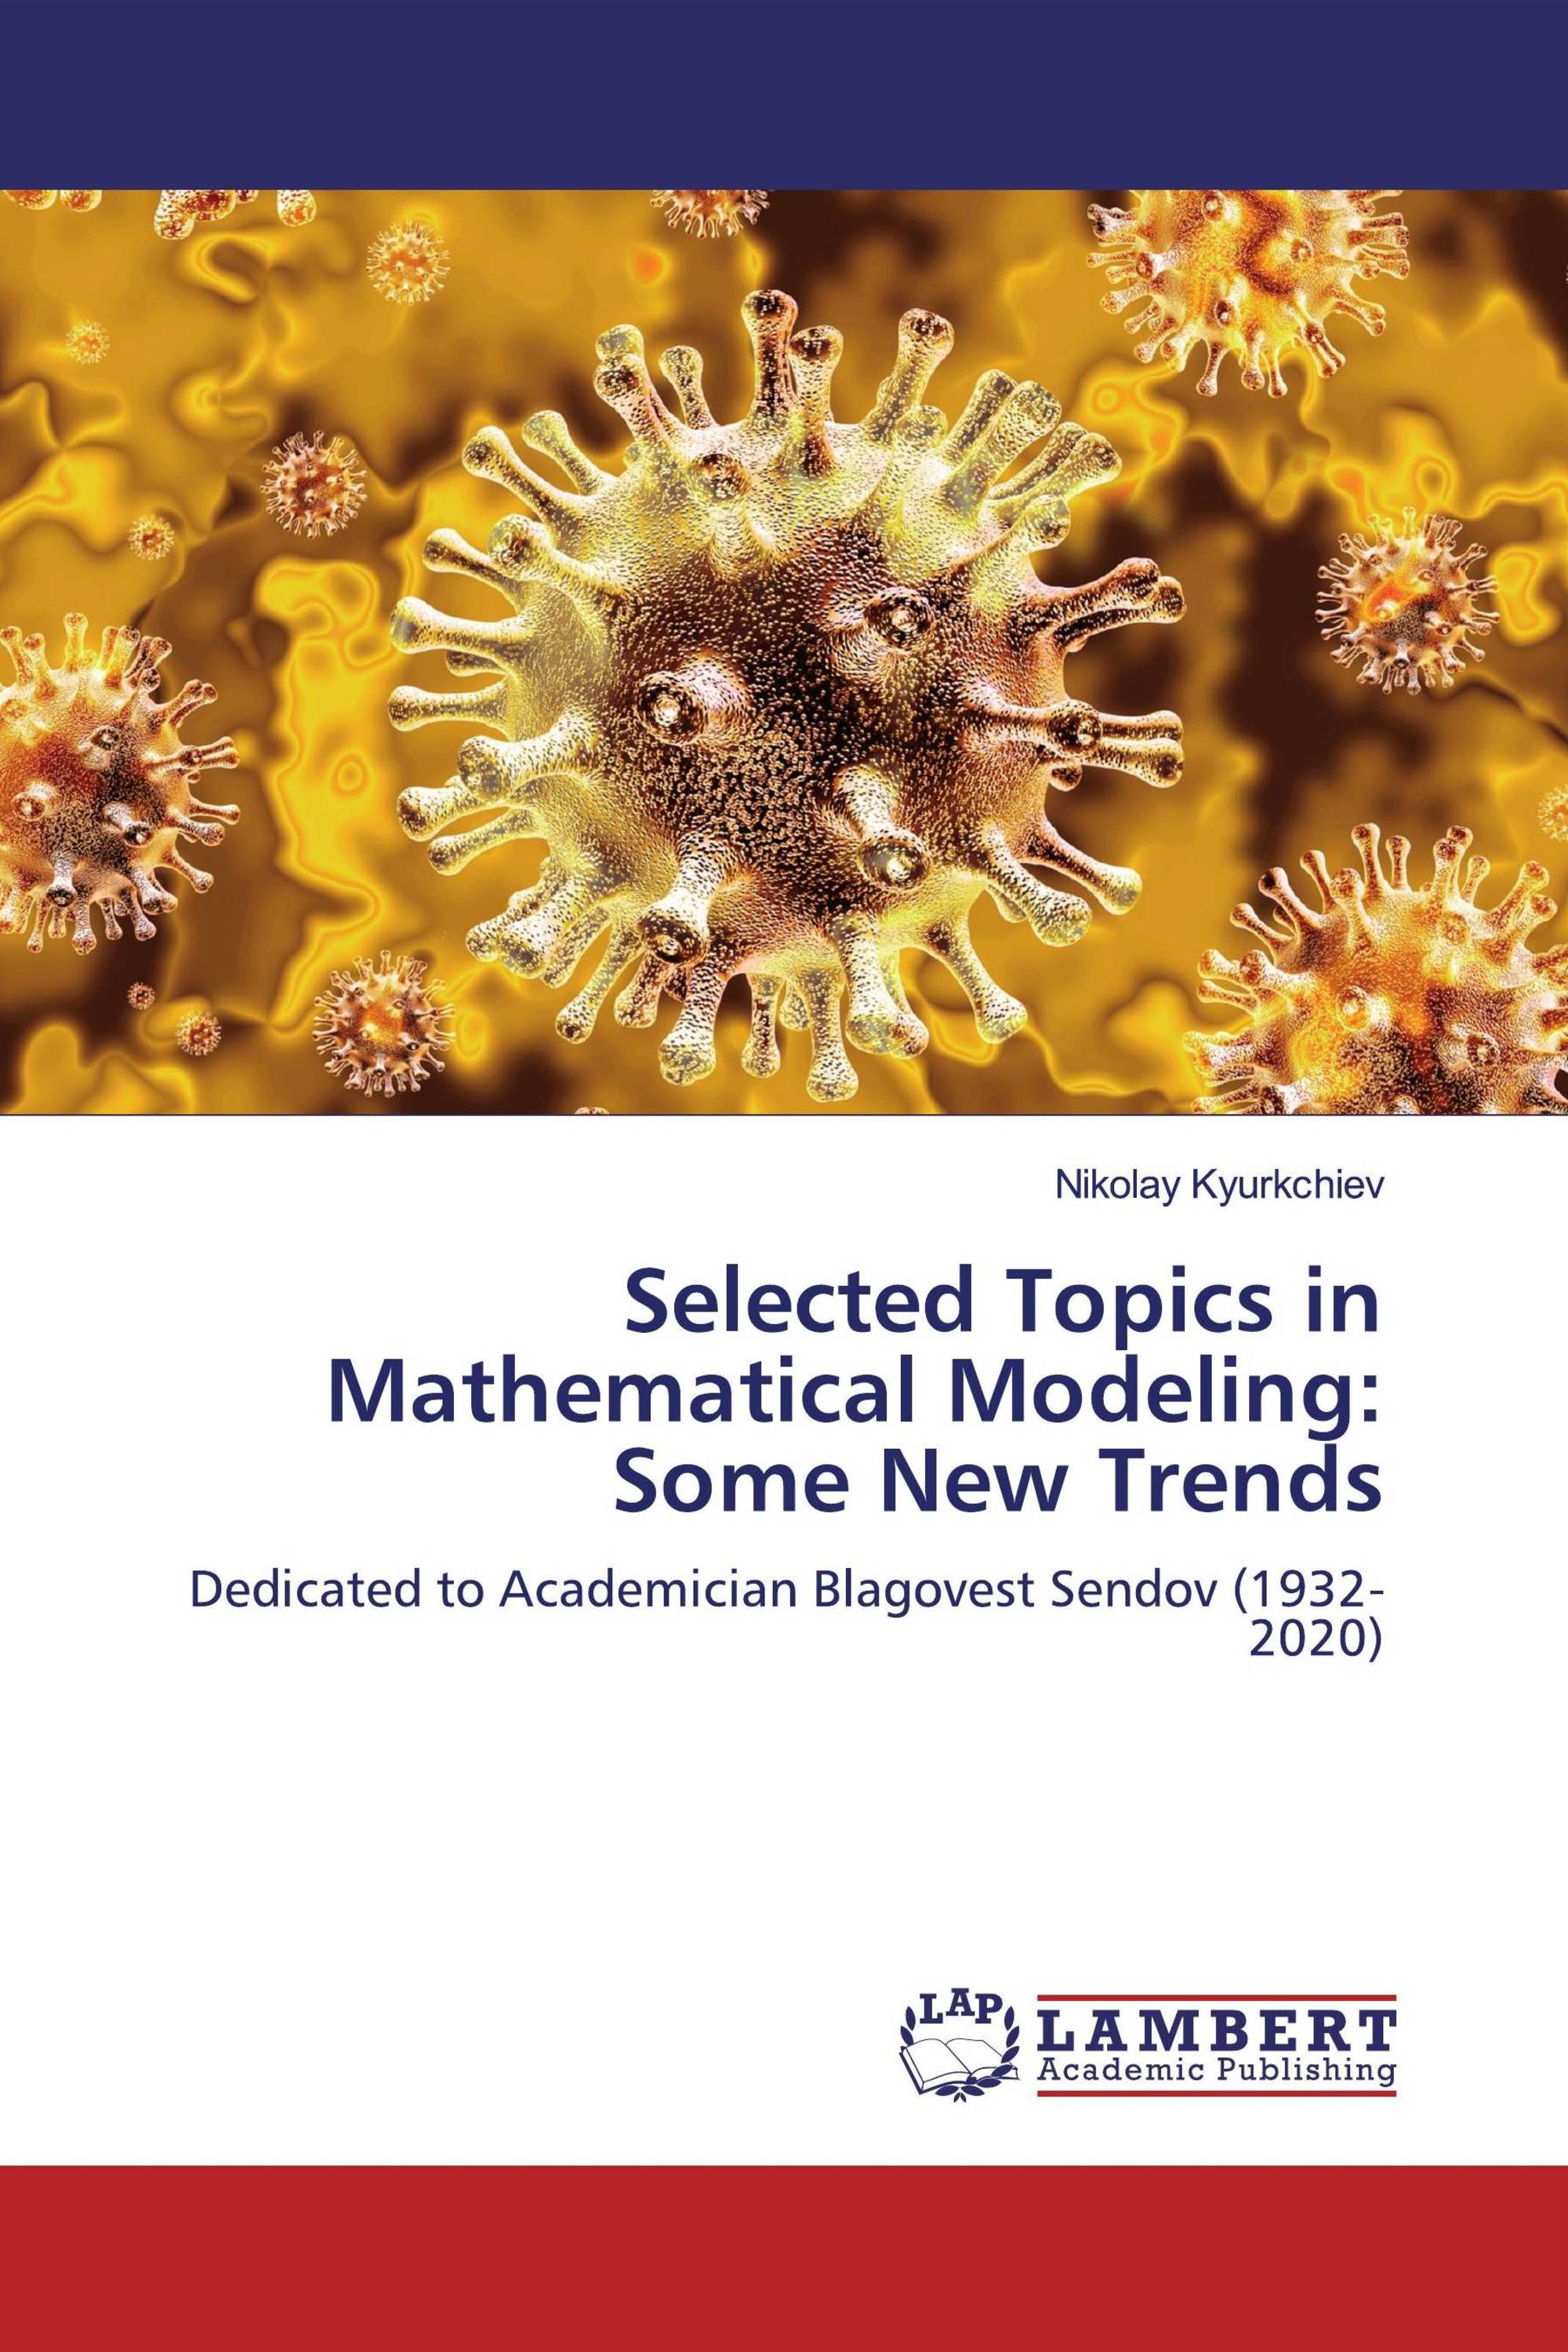 Selected Topics in Mathematical Modeling: Some New Trends